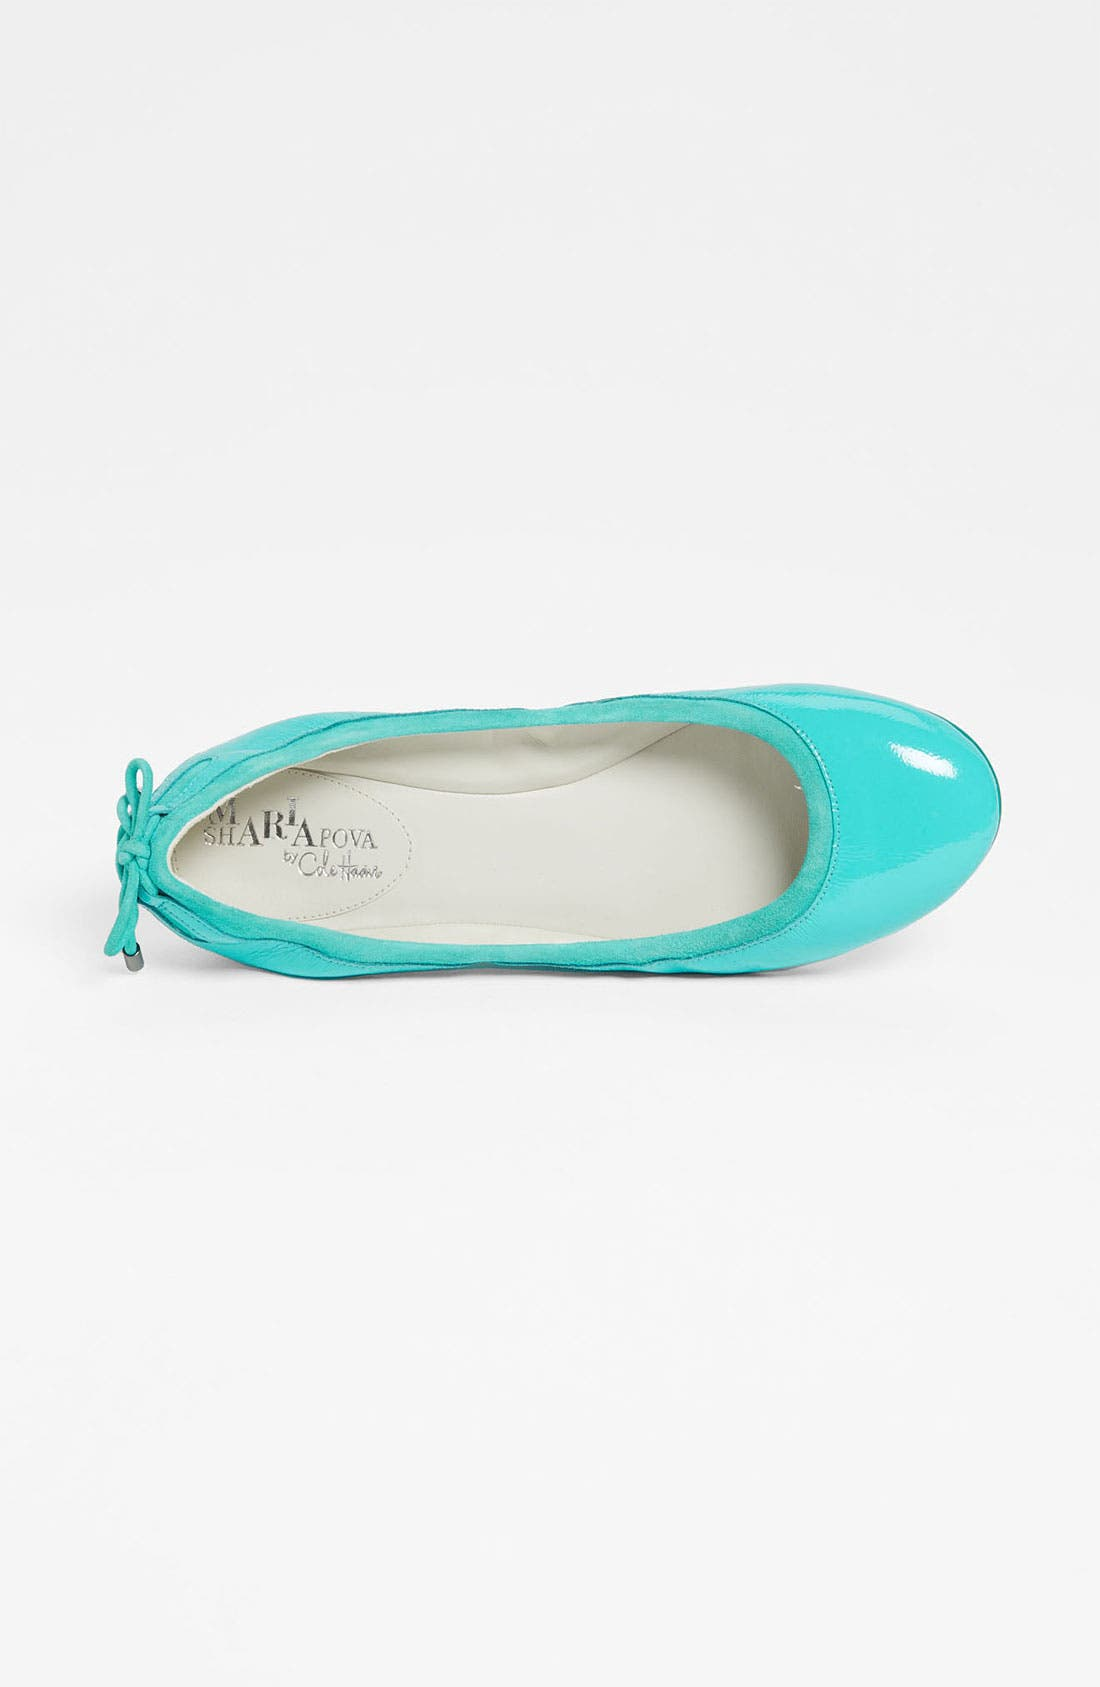 ,                             Maria Sharapova by Cole Haan 'Air Bacara' Flat,                             Alternate thumbnail 74, color,                             402